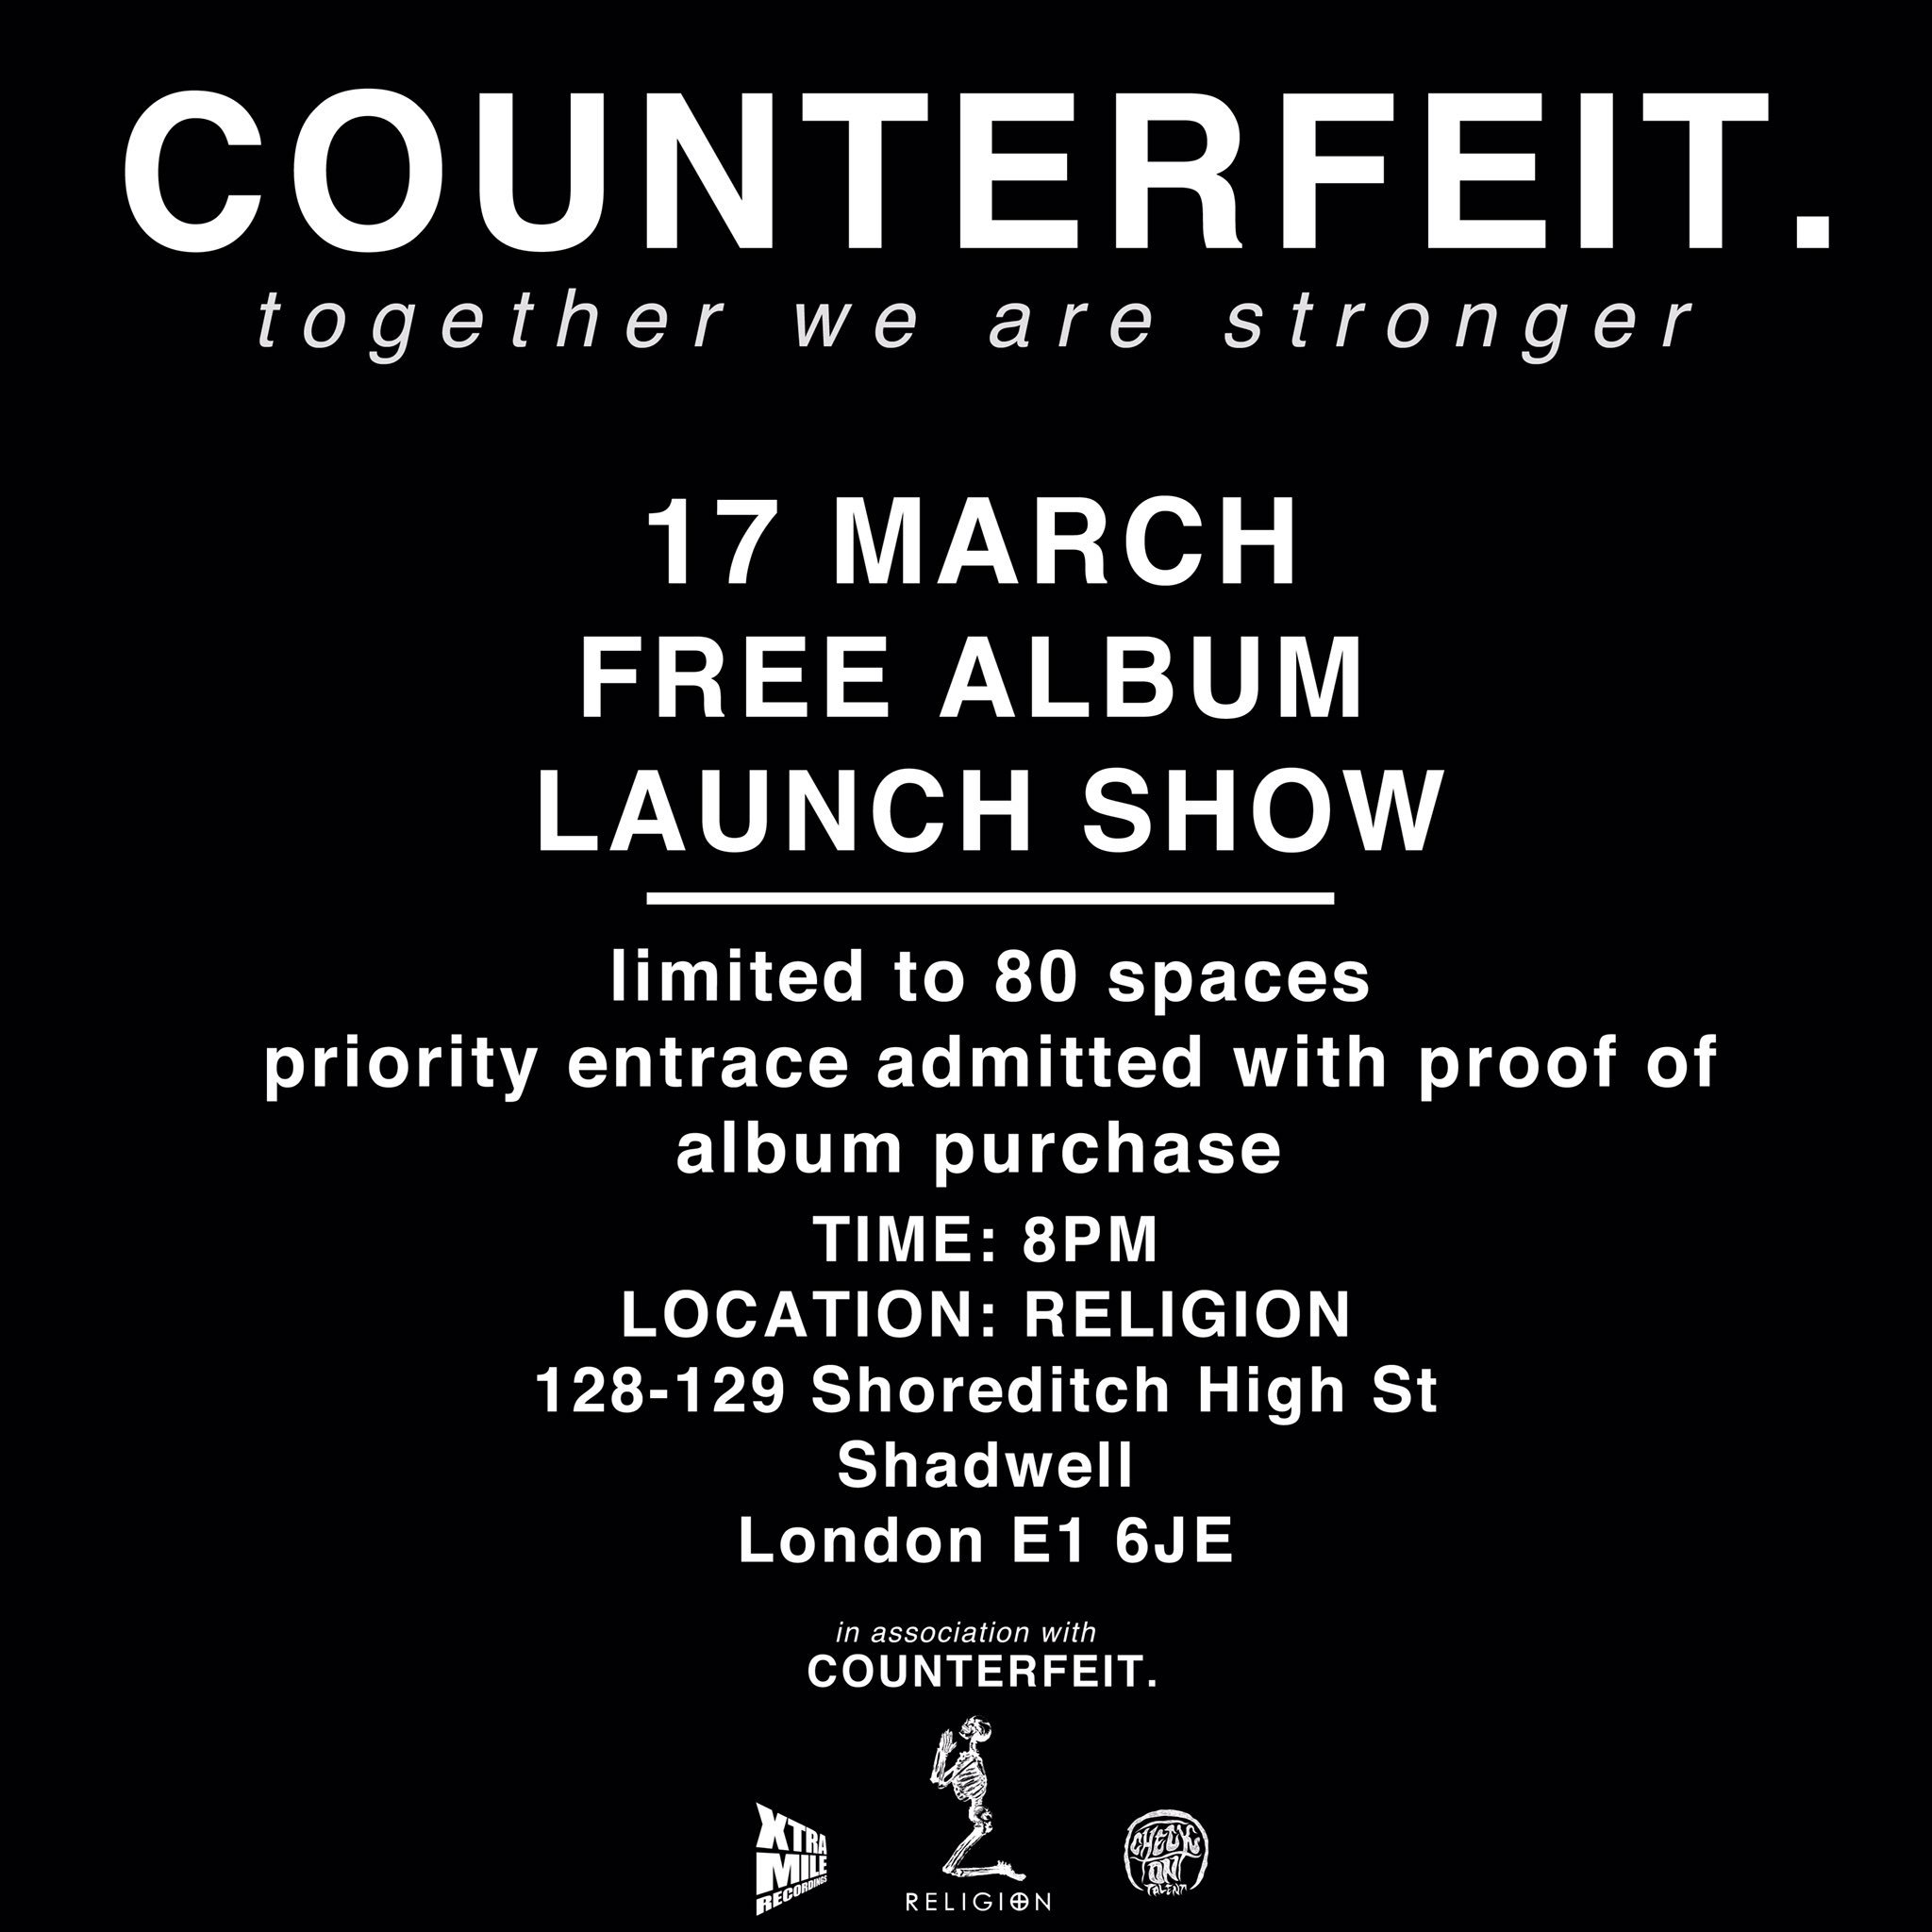 FREE GIG THIS FRIDAY. Be there. https://t.co/W2JtAm4UNW